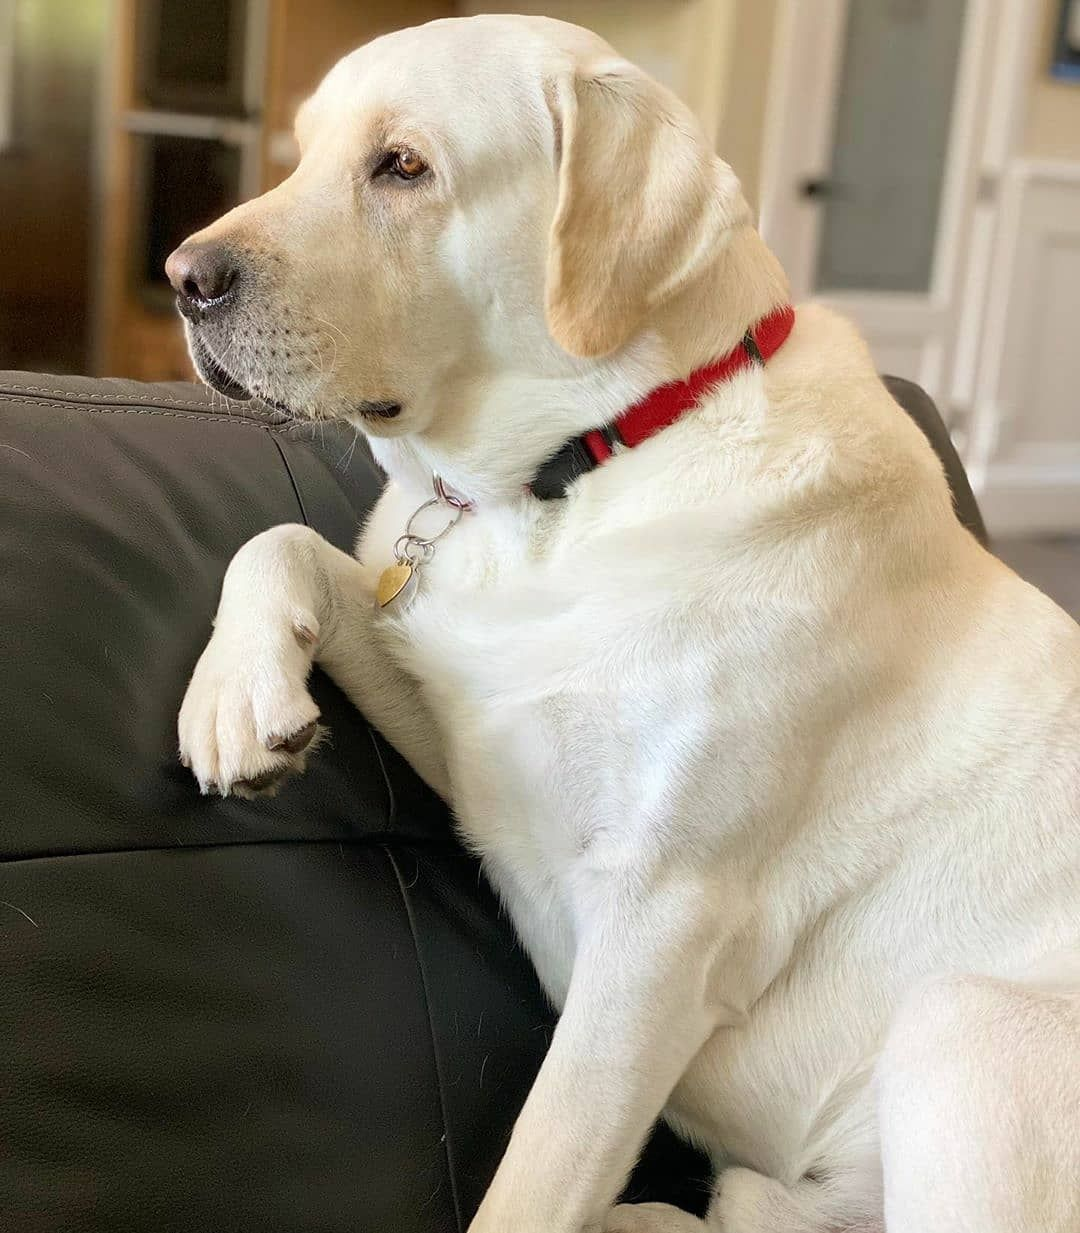 Clickthepicture To See A Girl With A Disability Has The Most Adorable Dog Ever 17 Pics In 2020 Cute Dogs Lab Dogs Dogs